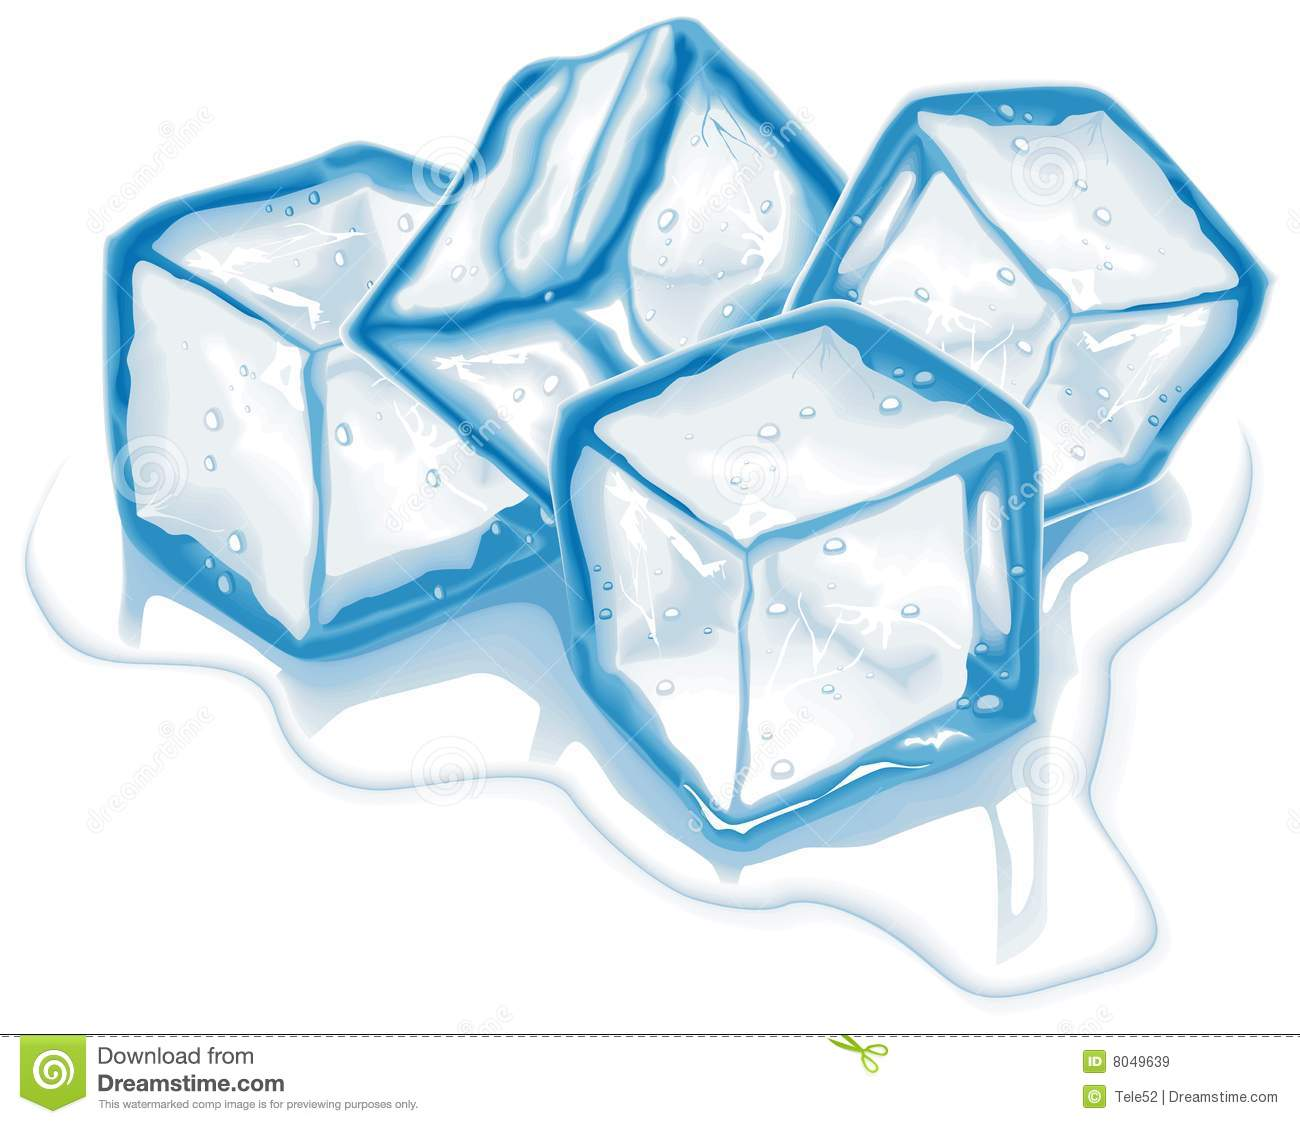 Royalty Free Stock Images Four Vector Ic-Royalty Free Stock Images Four Vector Ice Cubes-6